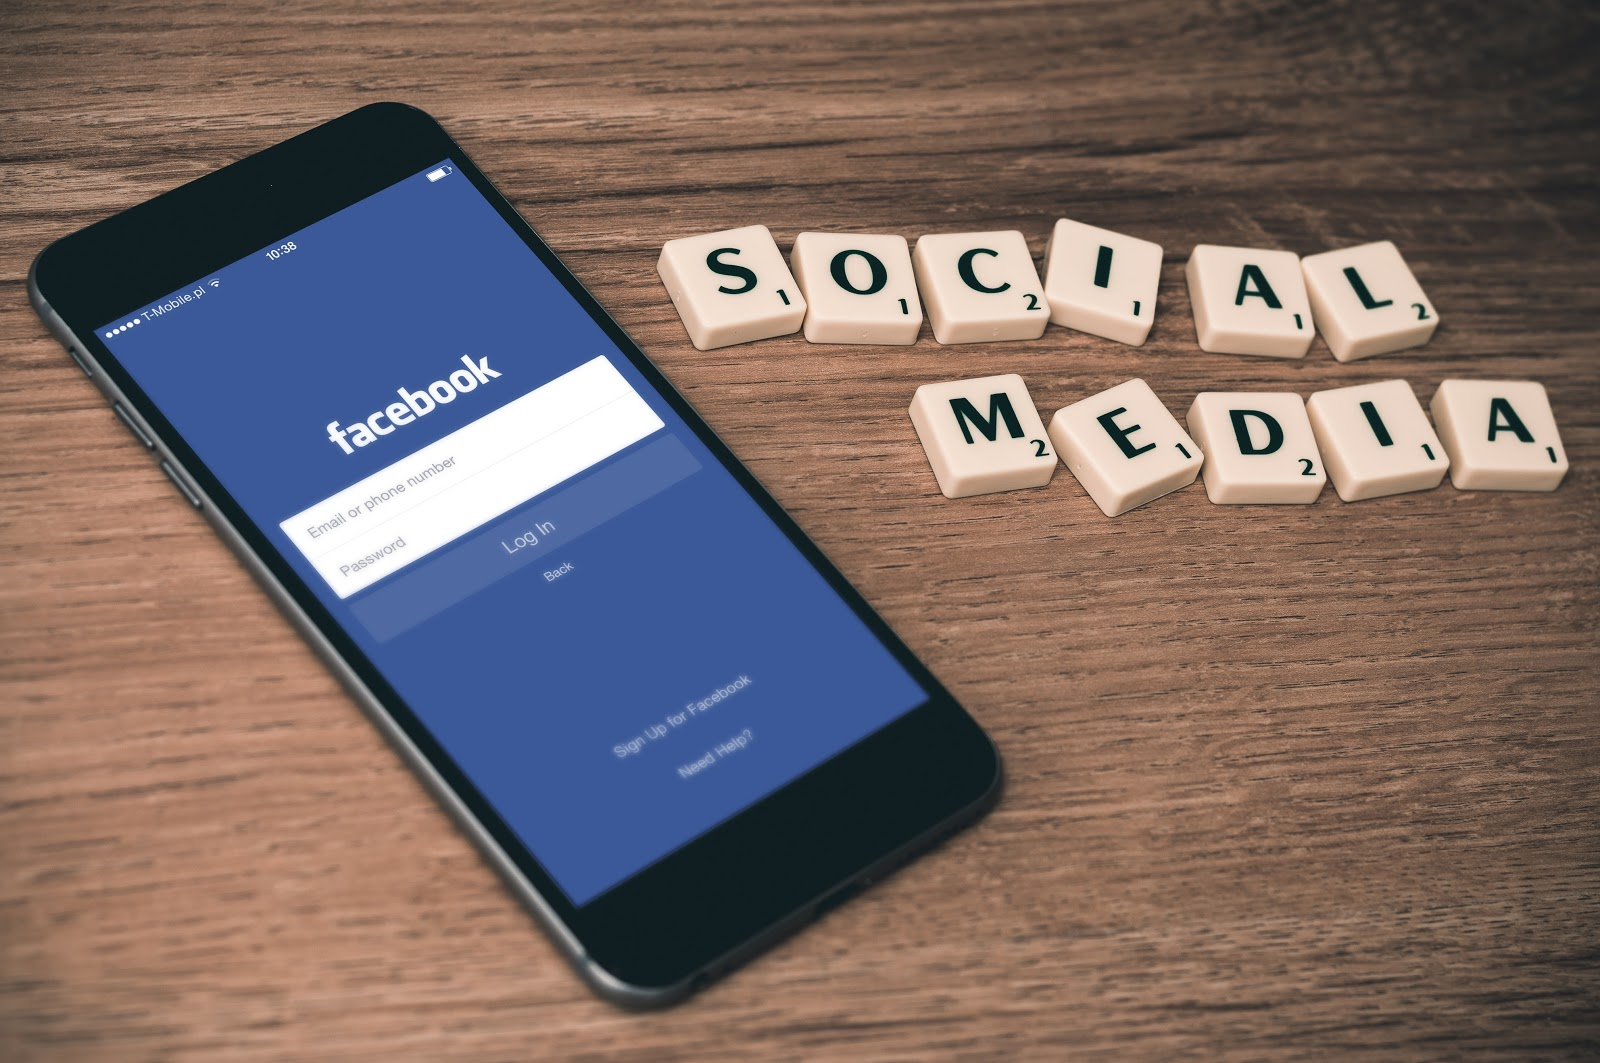 Respond to service complaints on social media.